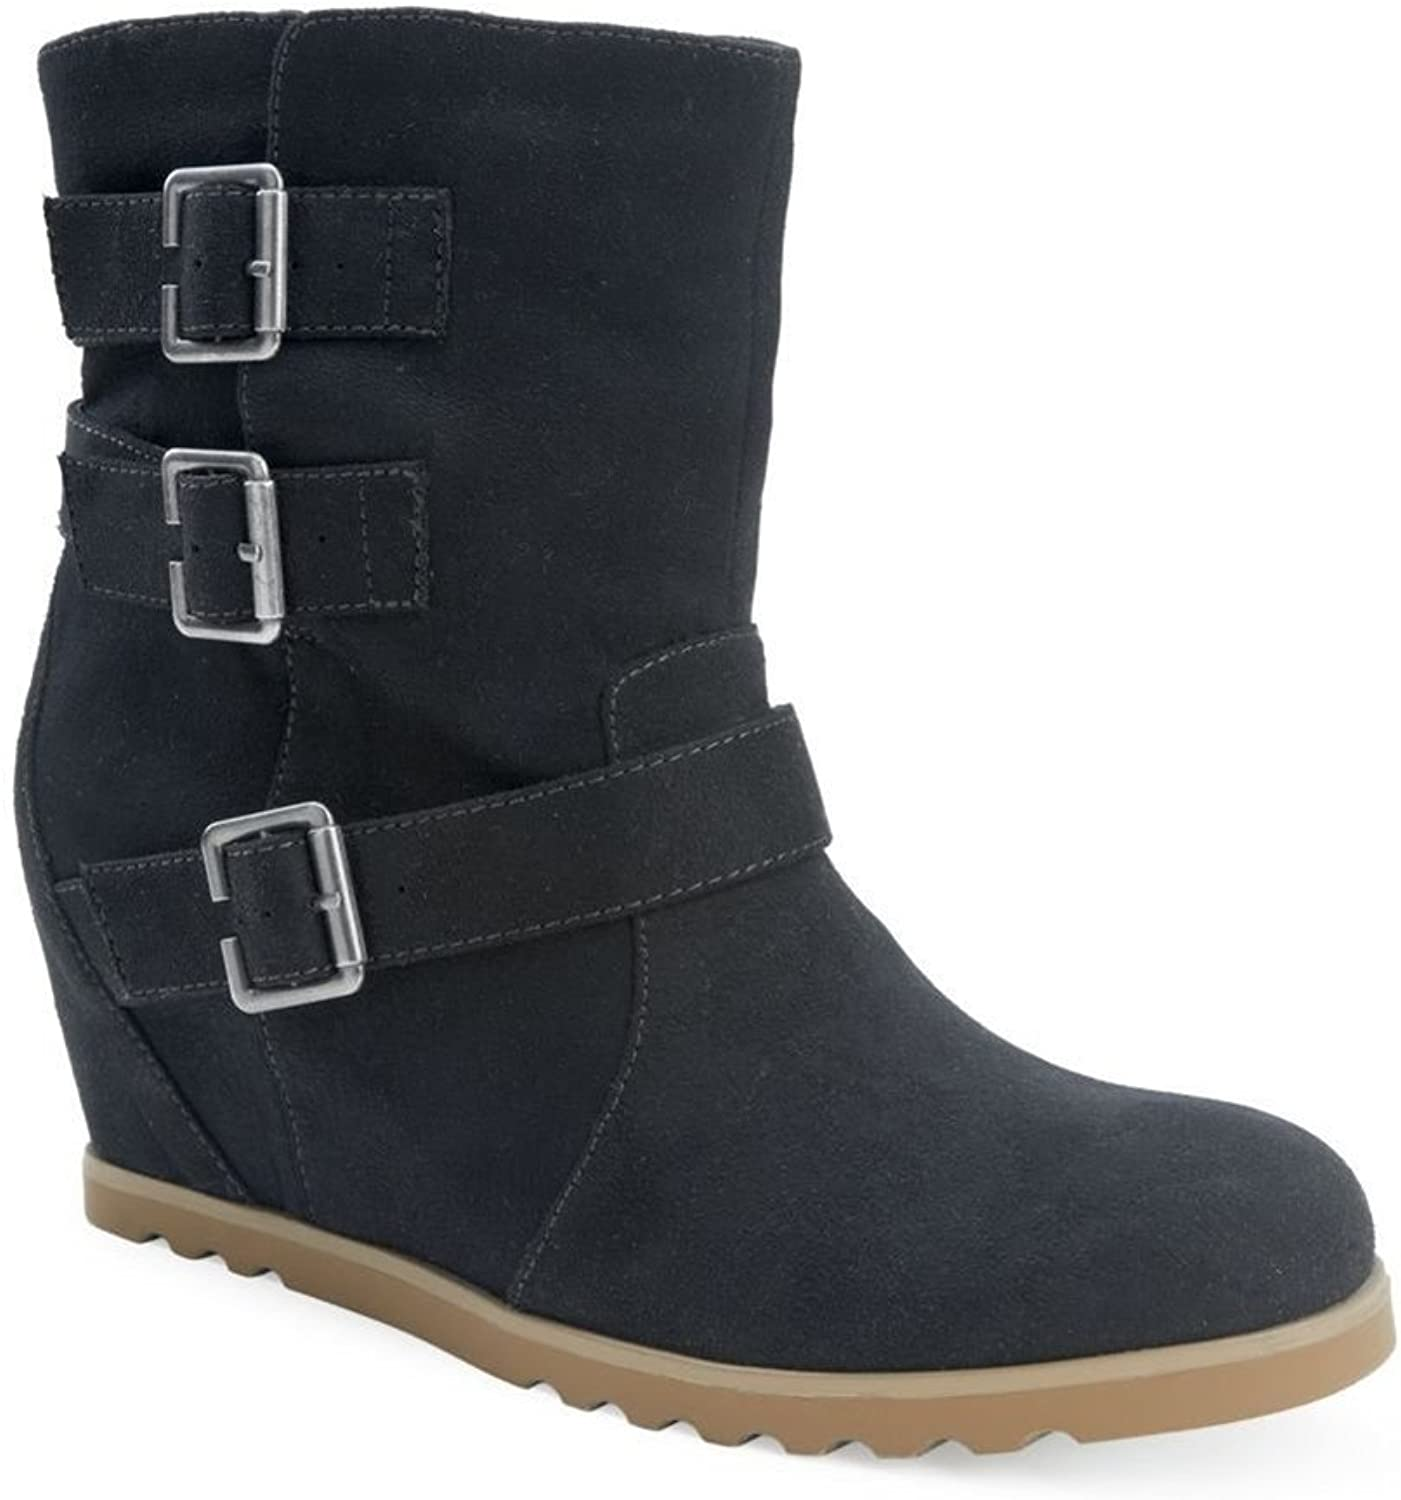 Aeropostale Womens Faux Suede Wedge Boots